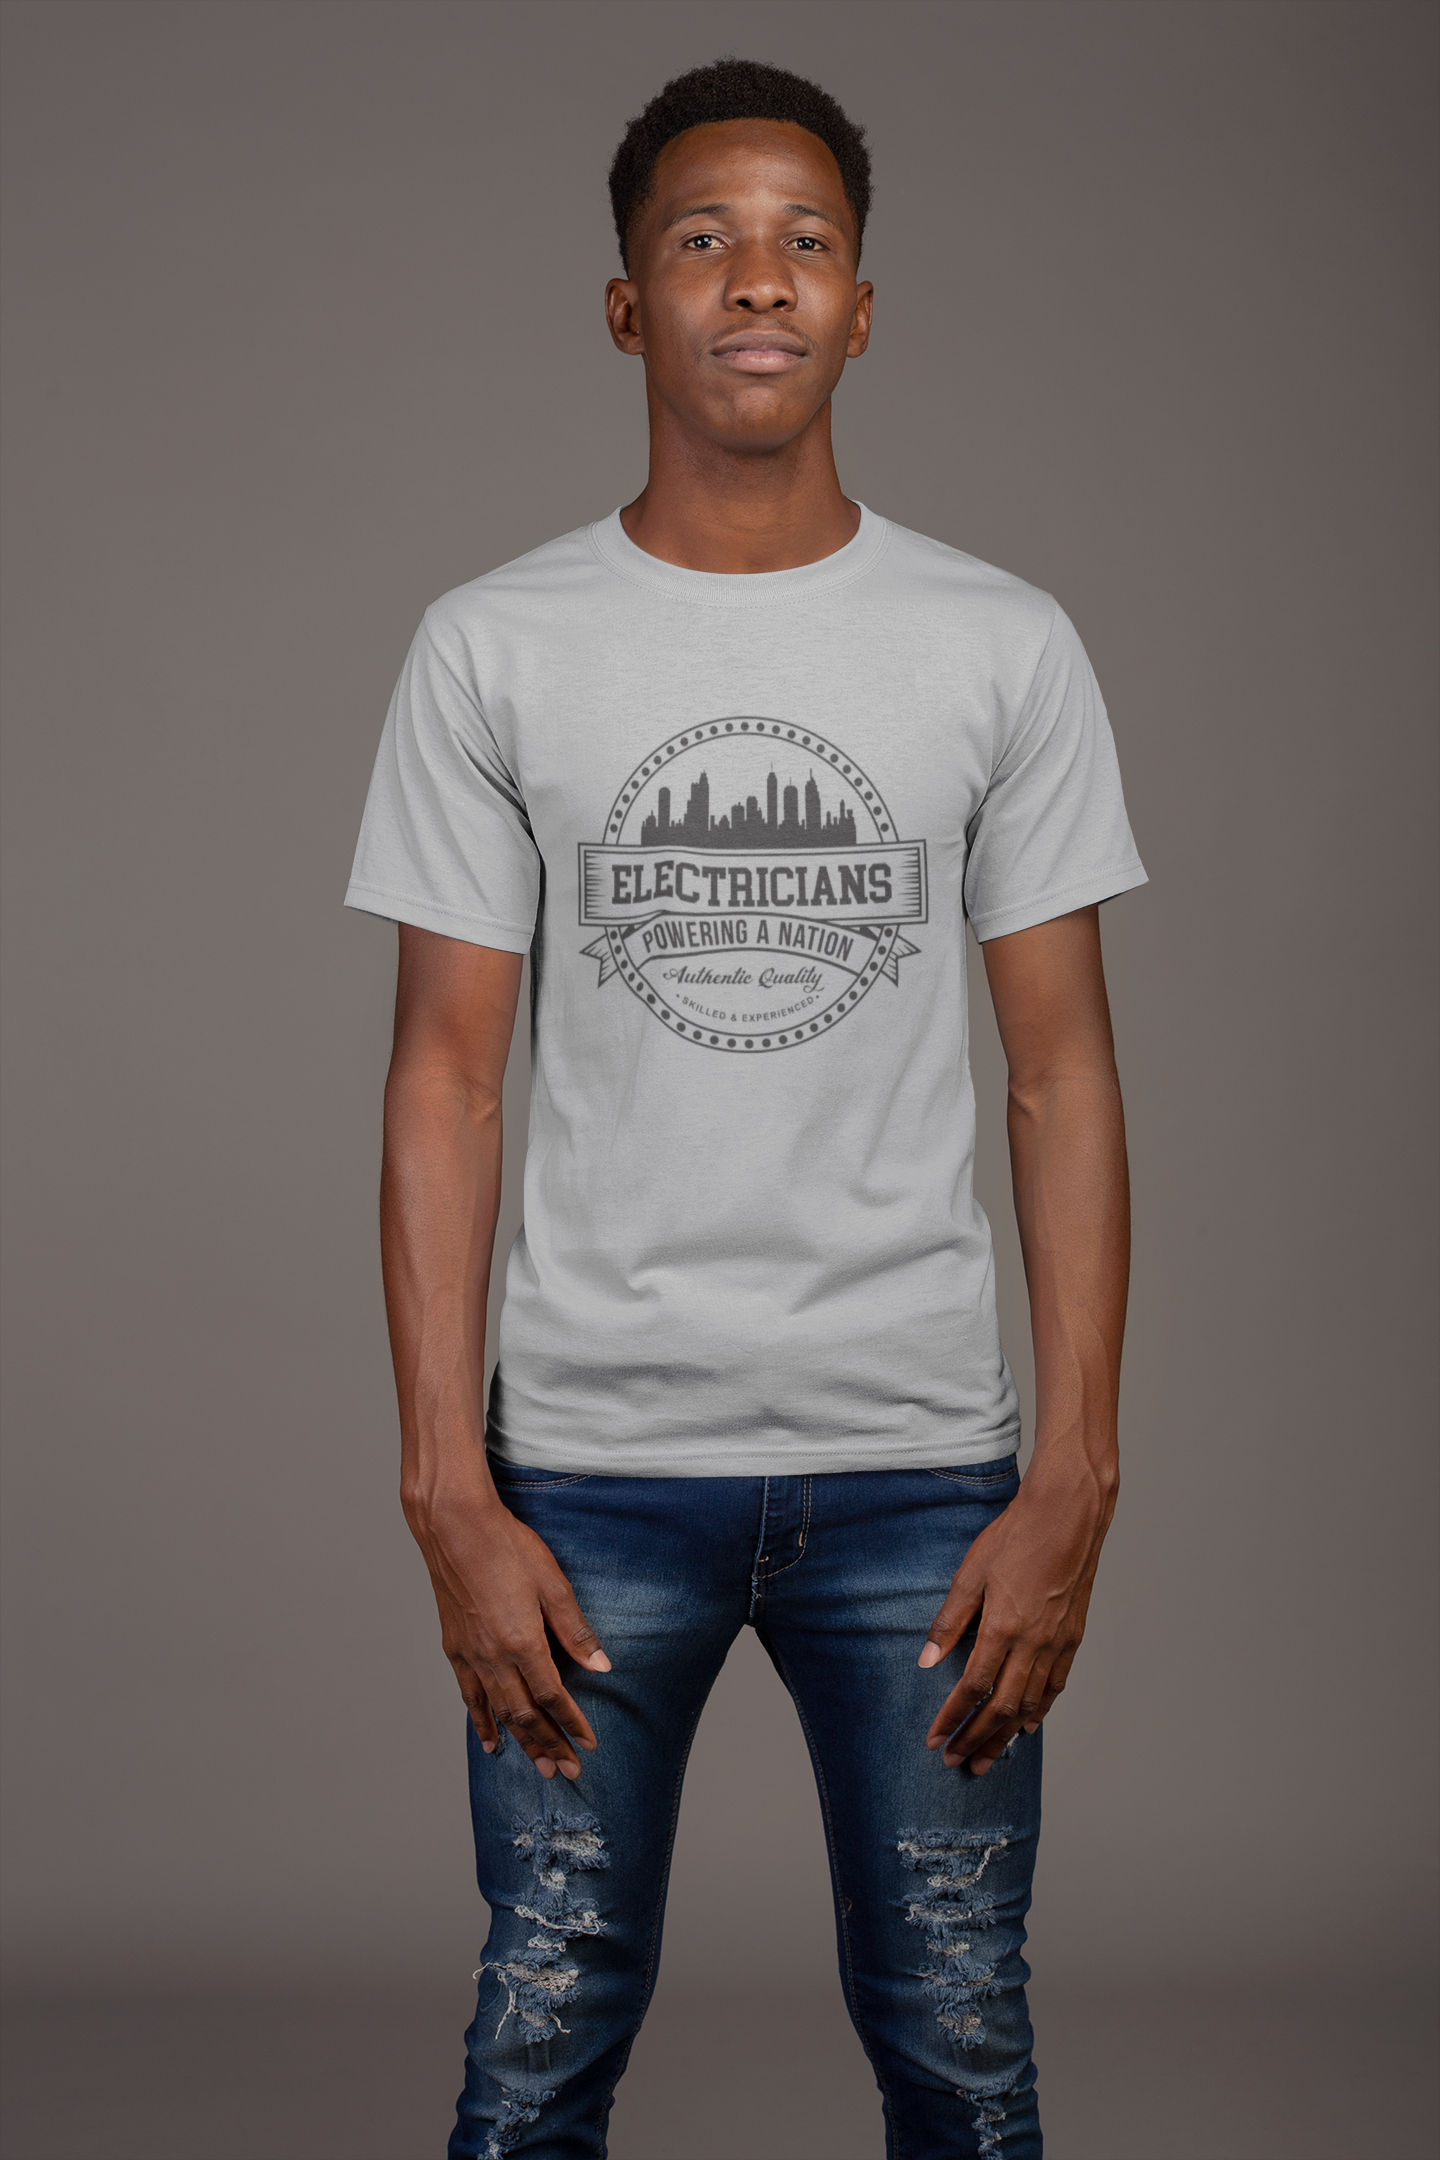 t-shirt-mockup-of-a-man-with-a-coy-smile-21156.png